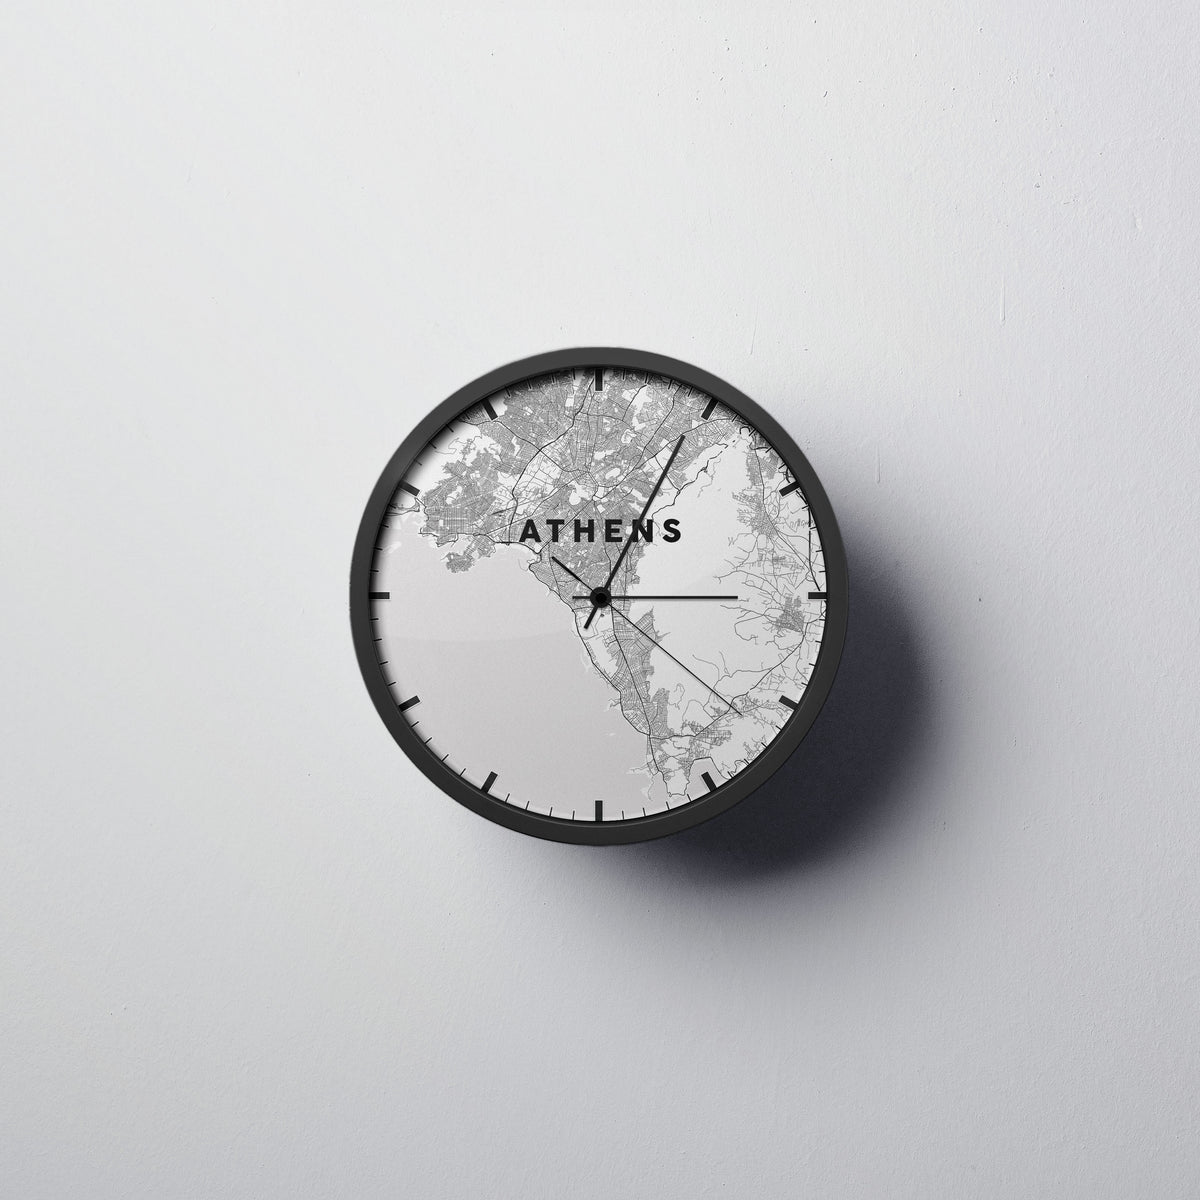 Athens Wall Clock - Point Two Design